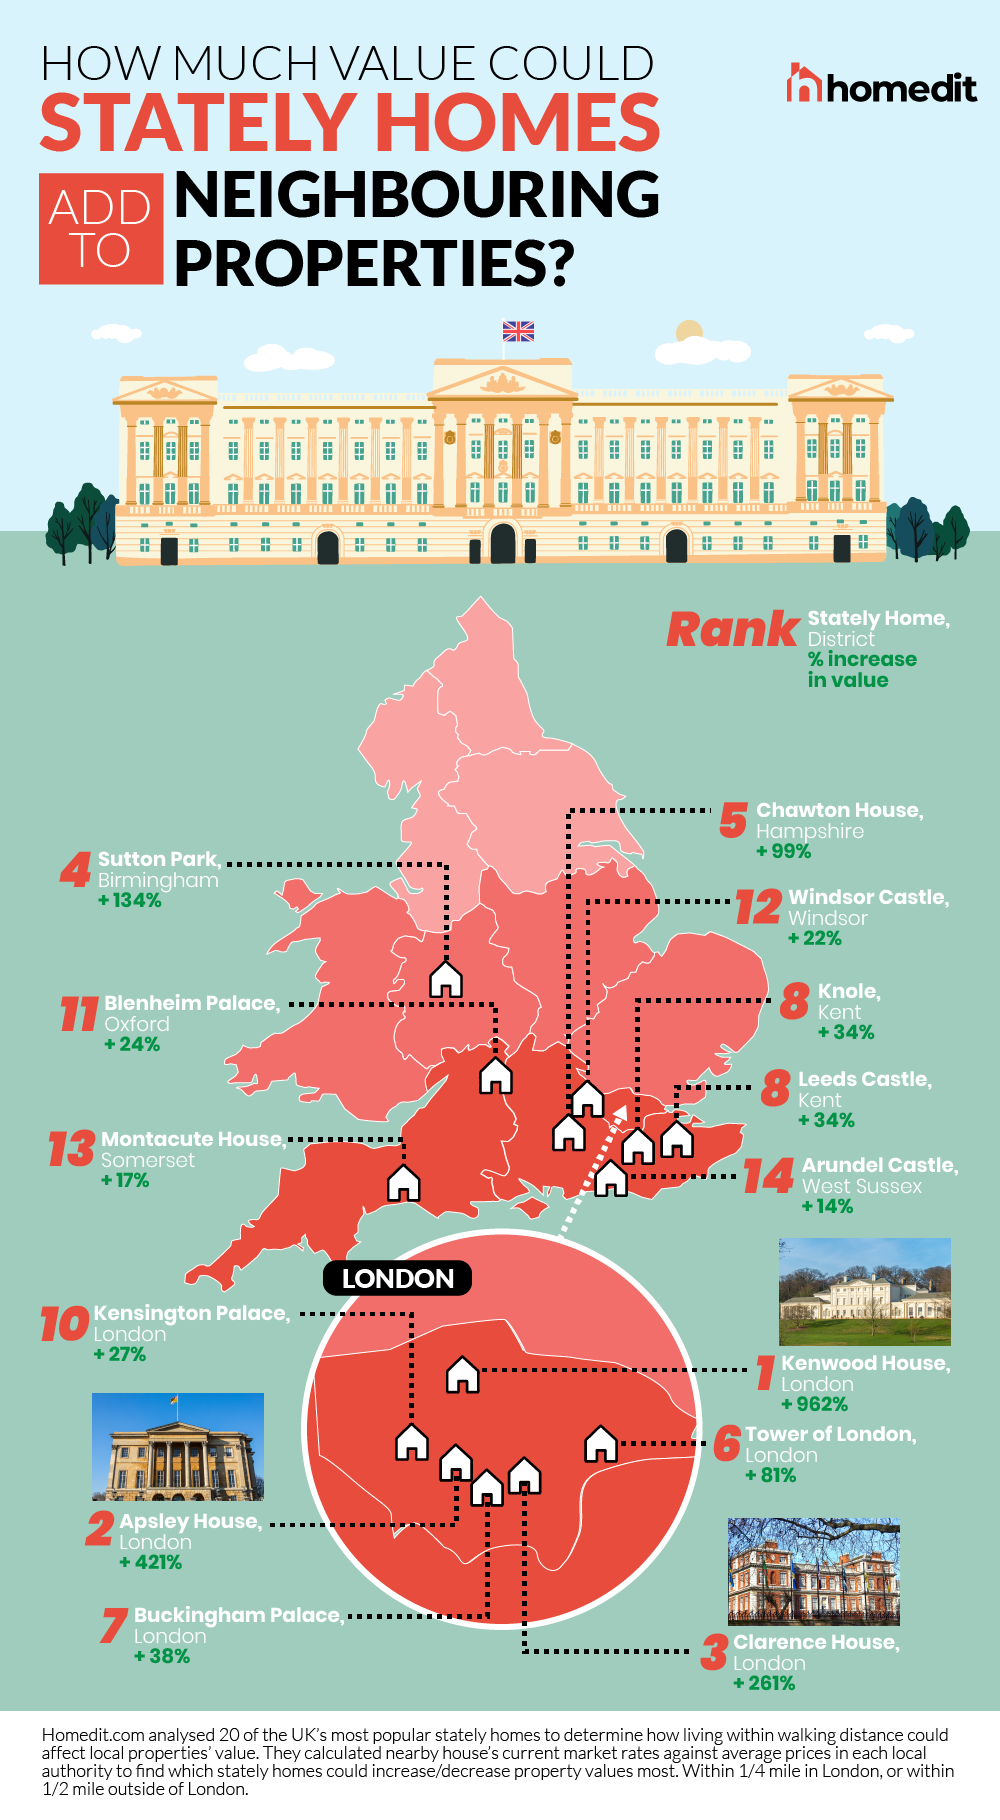 Which stately homes could add the most value to neighbouring properties?